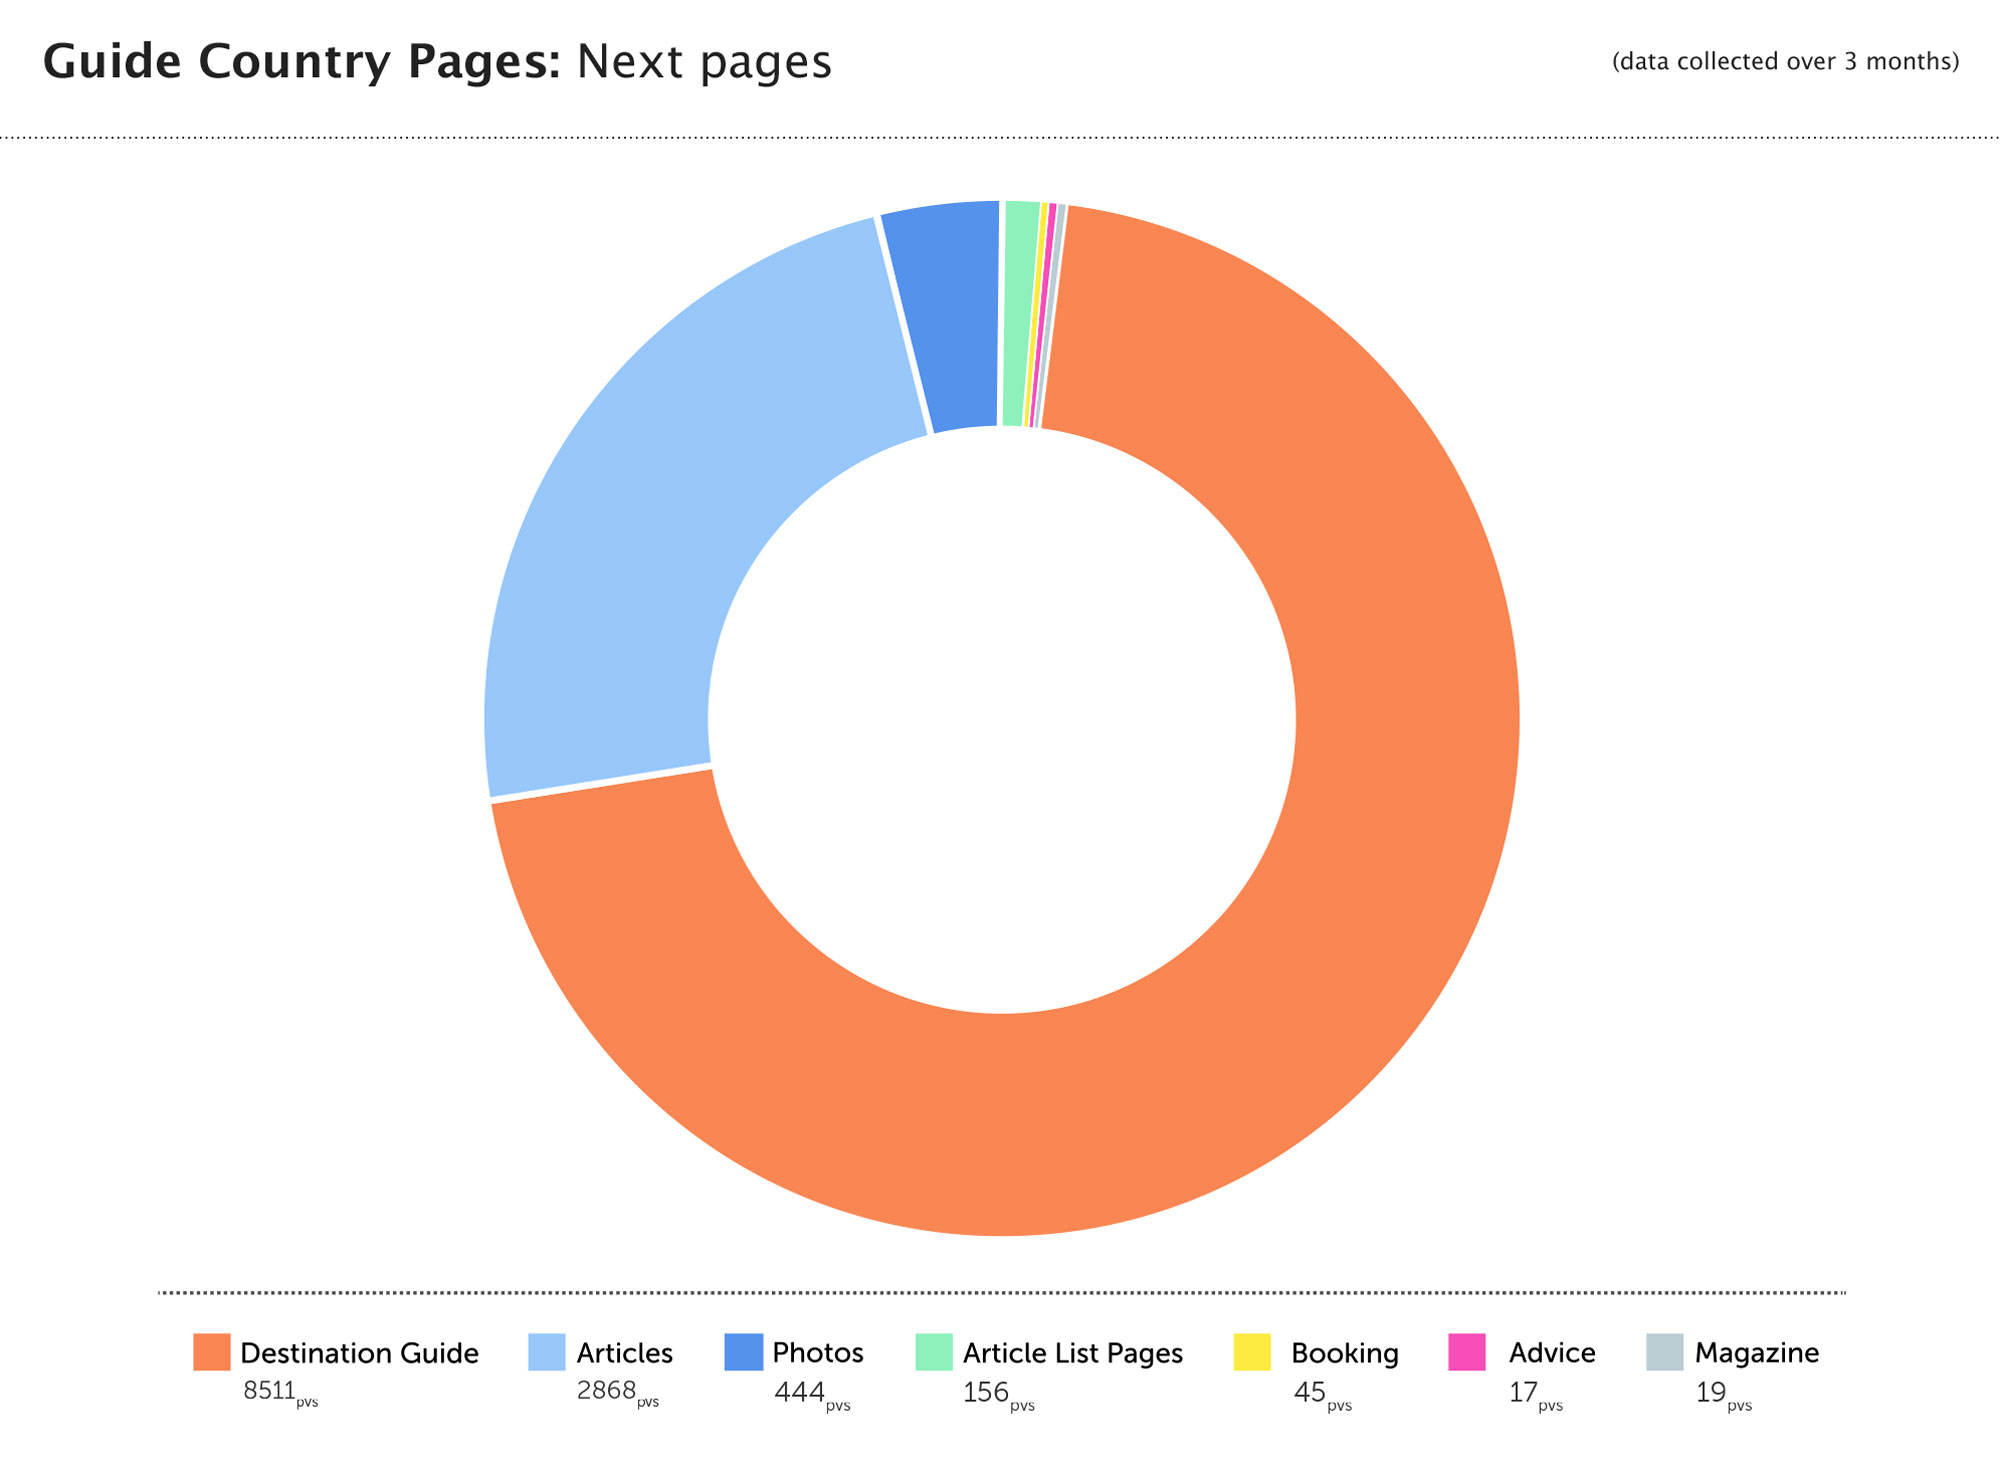 Looking at which pages users were going to after being on the Country Guide page